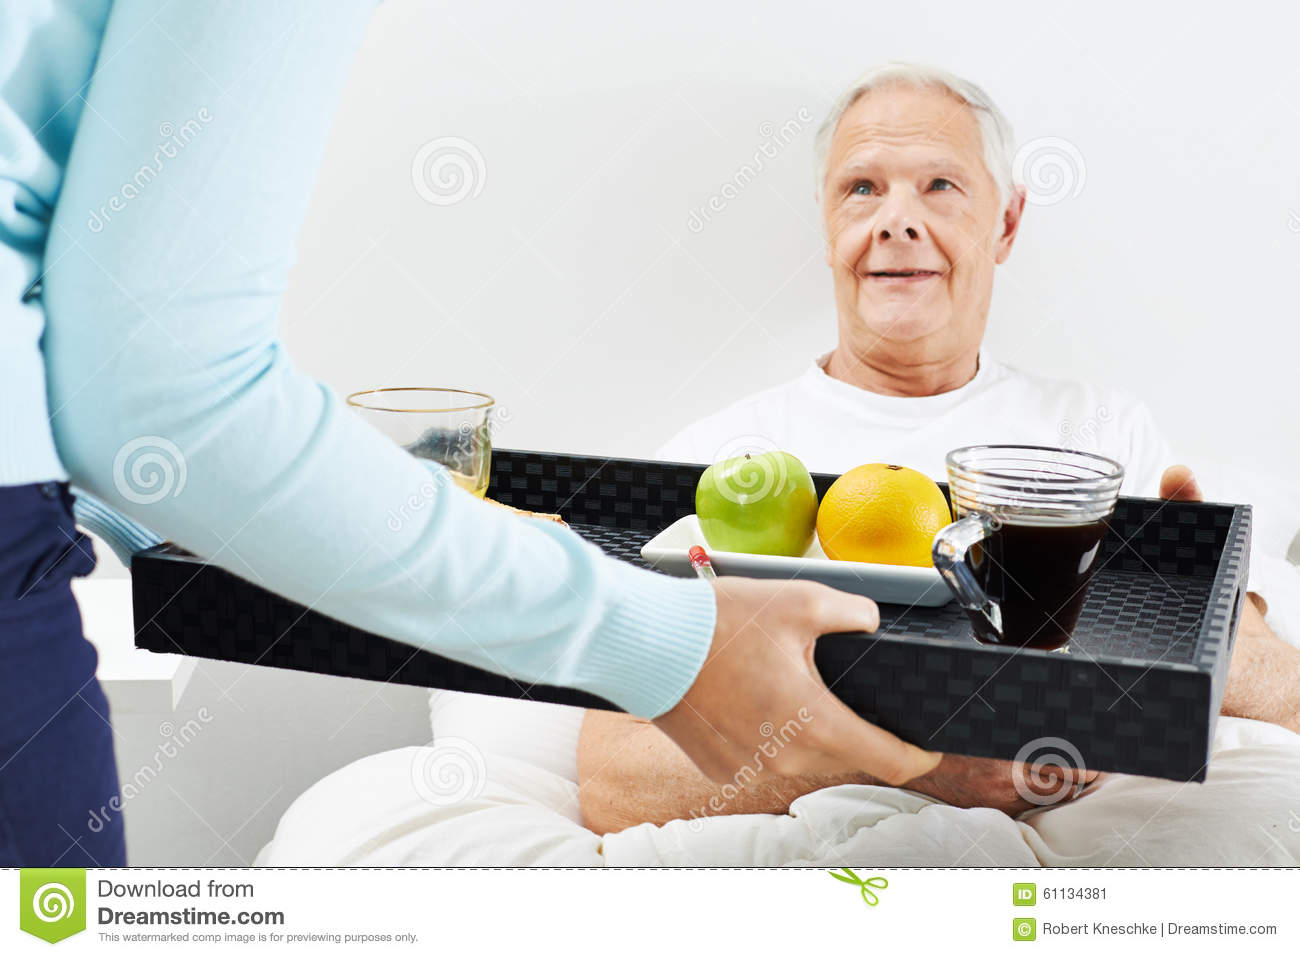 Old Man Eating Breakfast In Bed Stock Photo - Image: 61134381